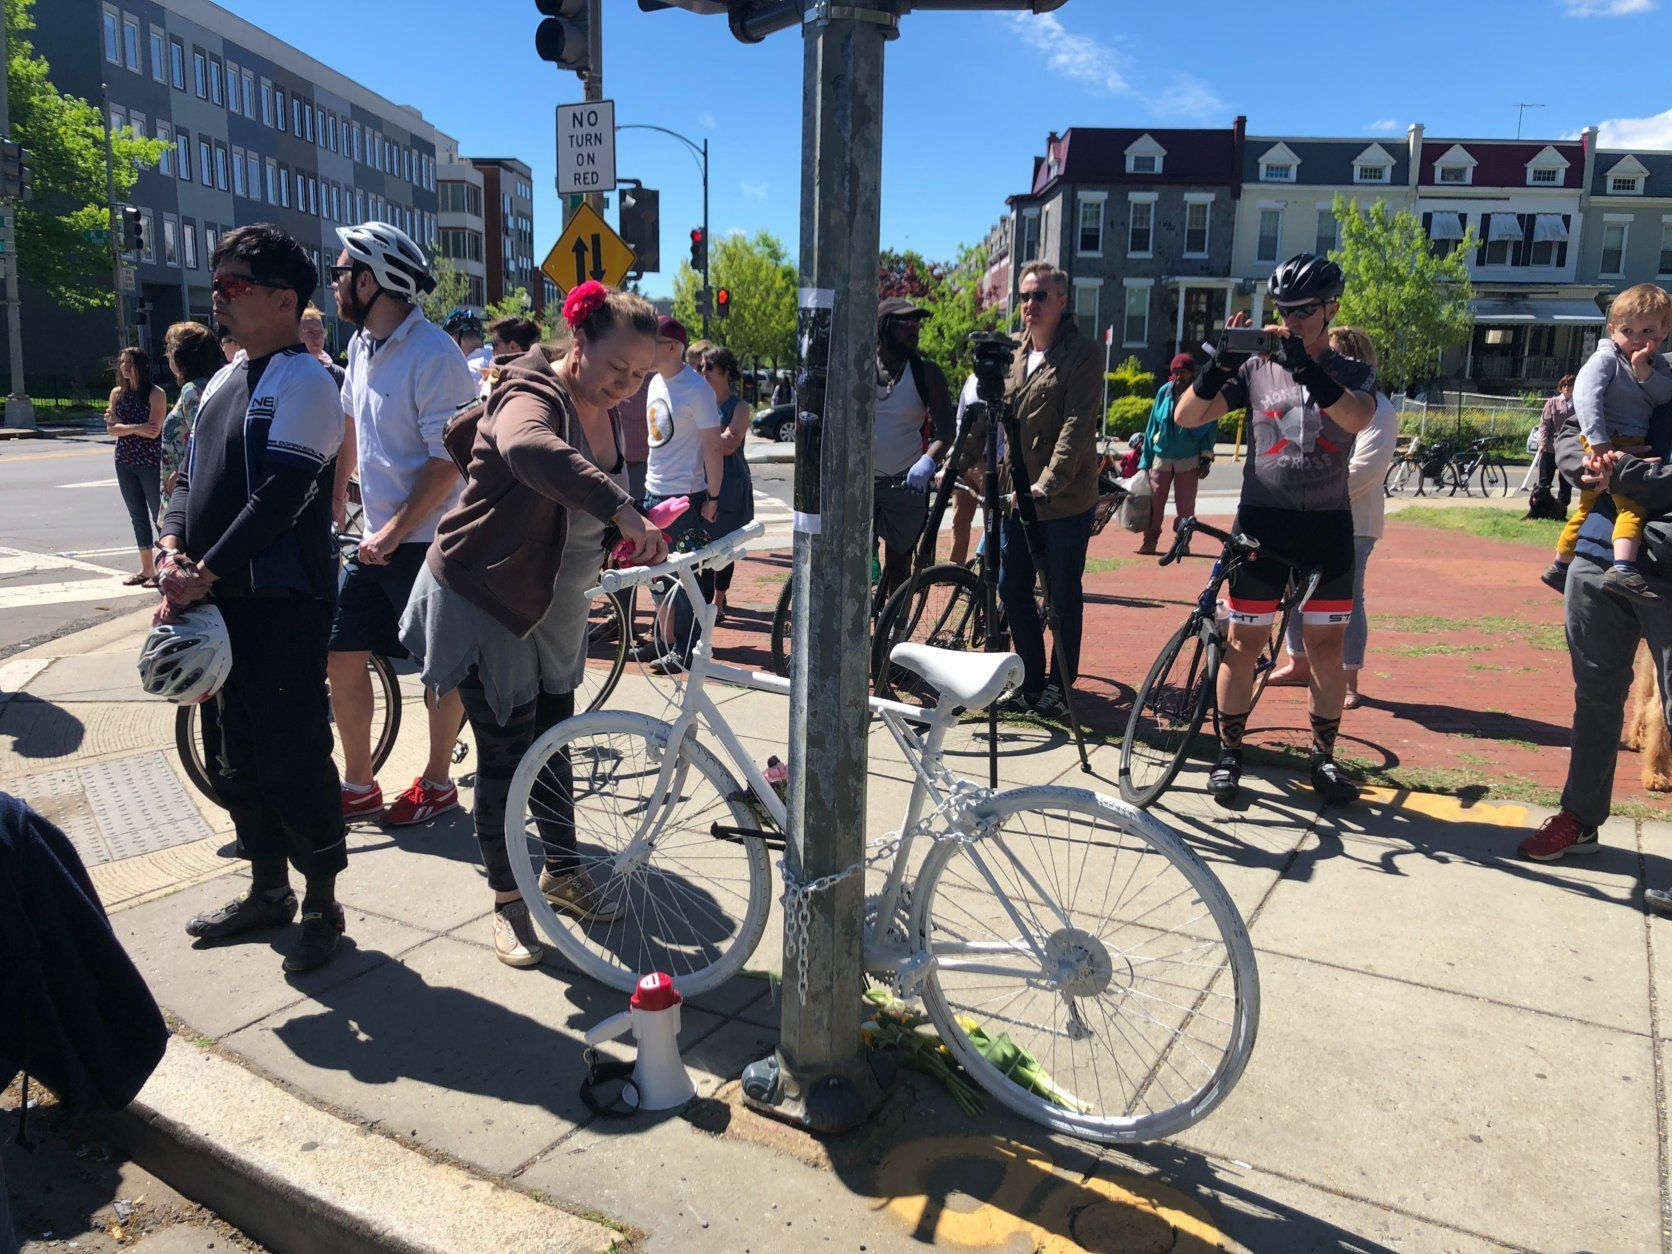 A ghost bike has become a common site at intersections in major cities across America where cyclists have been struck by cars. (WTOP/Melissa Howell)